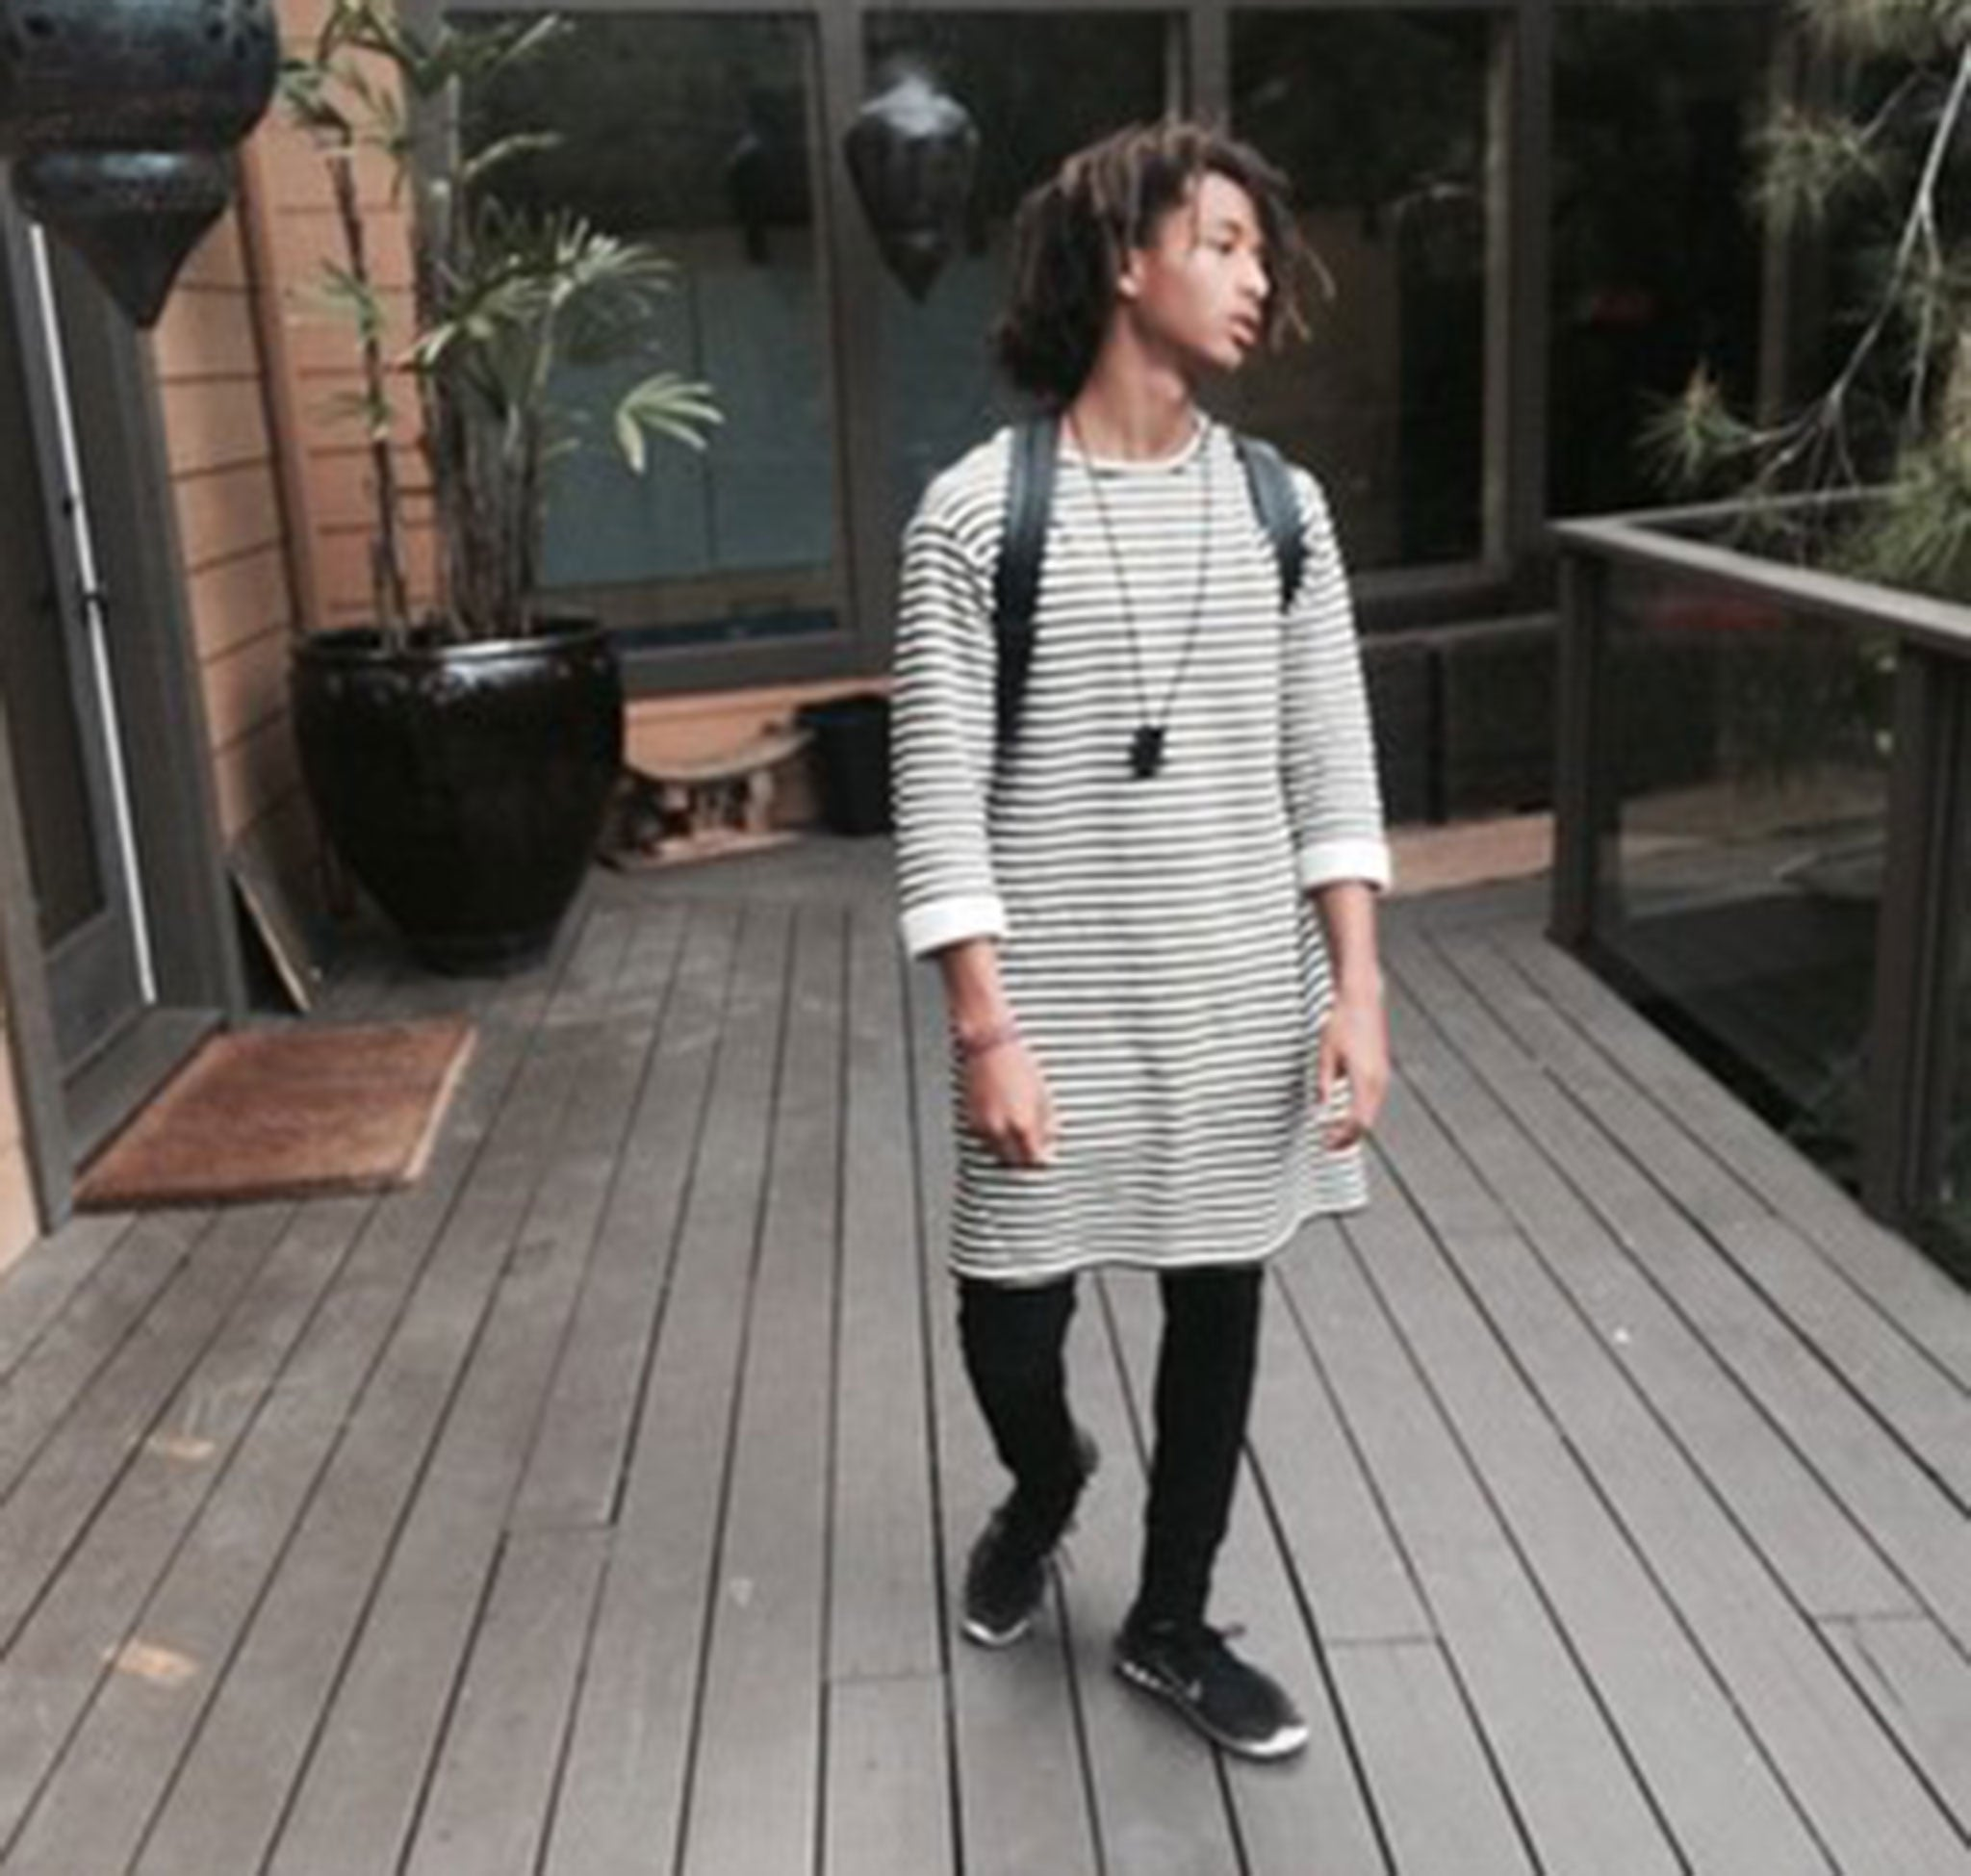 Jaden Smith Challenges Gender Stereotypes By Wearing A Dress In California The Independent